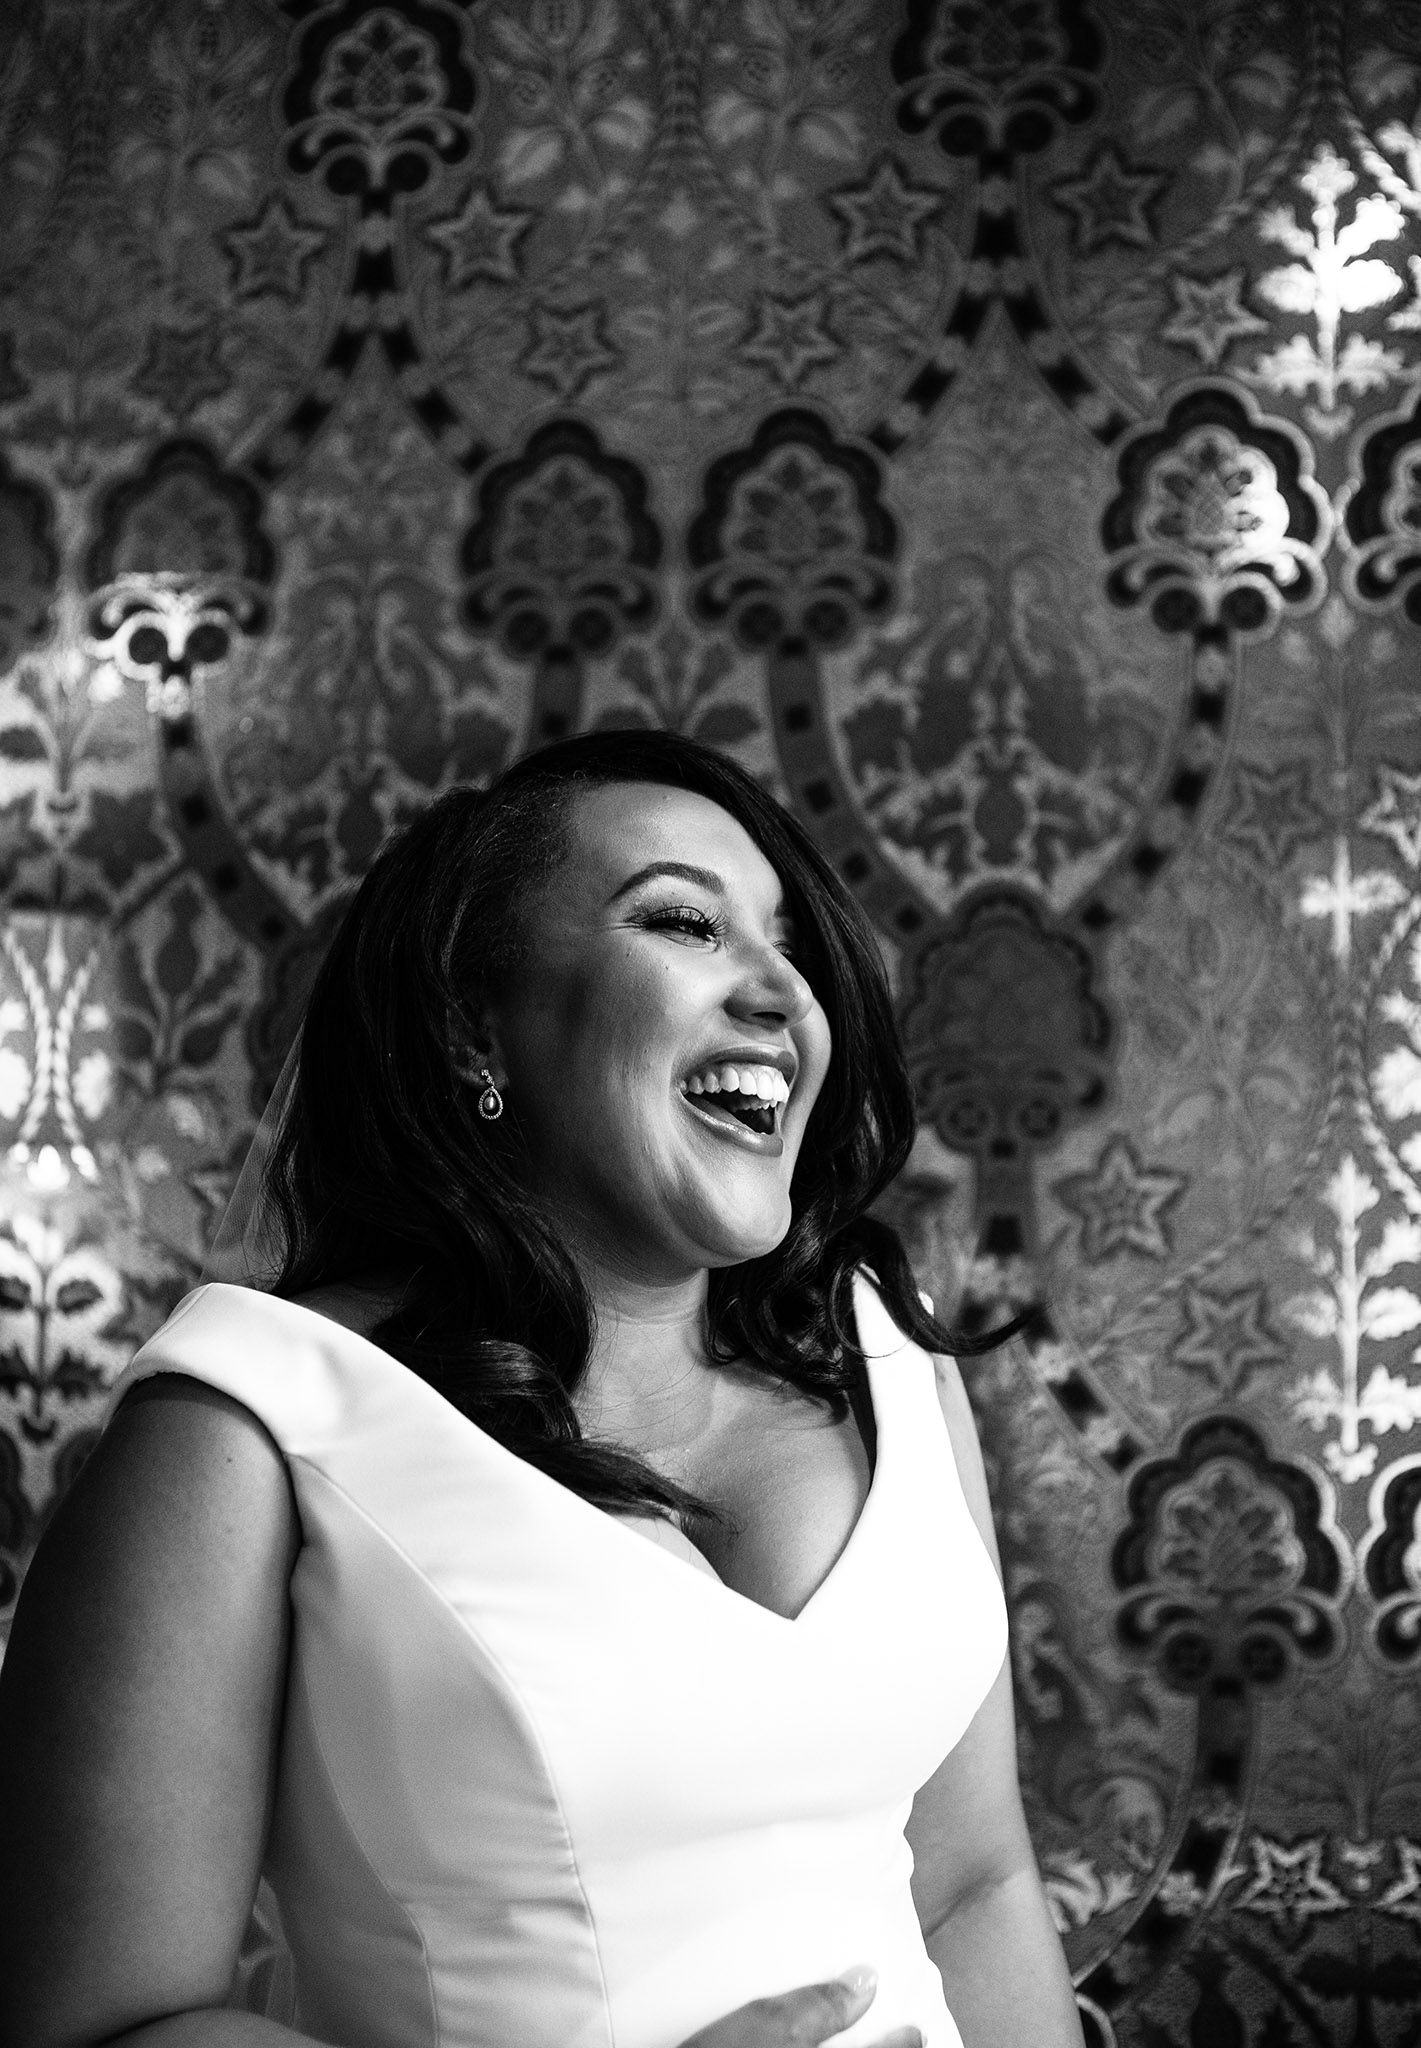 A black & white photo of a bride laughing with patterned wallpaper in the background